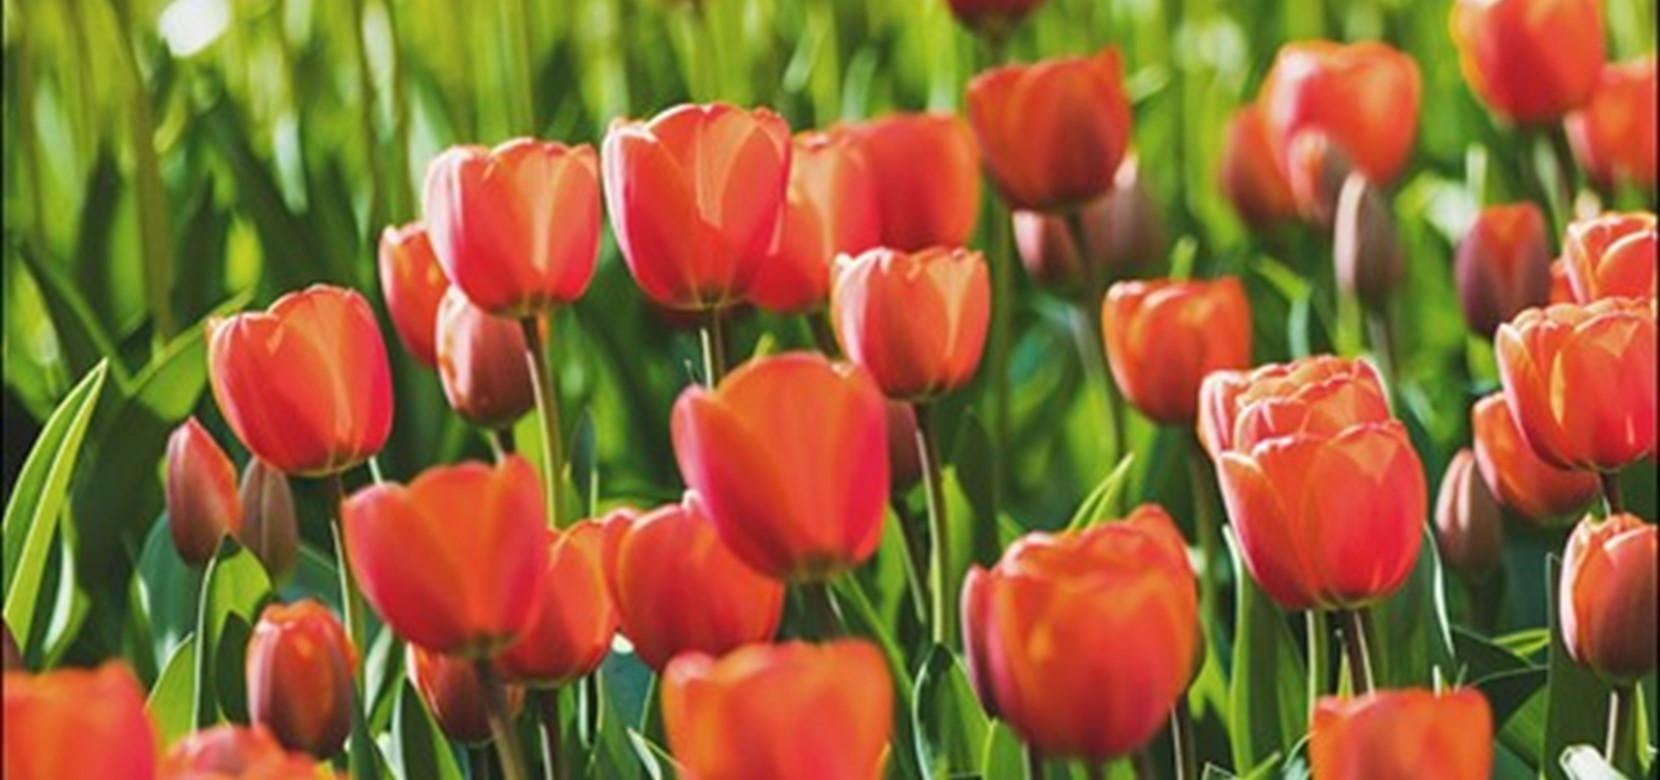 The top 3 places to find tulips in Amsterdam